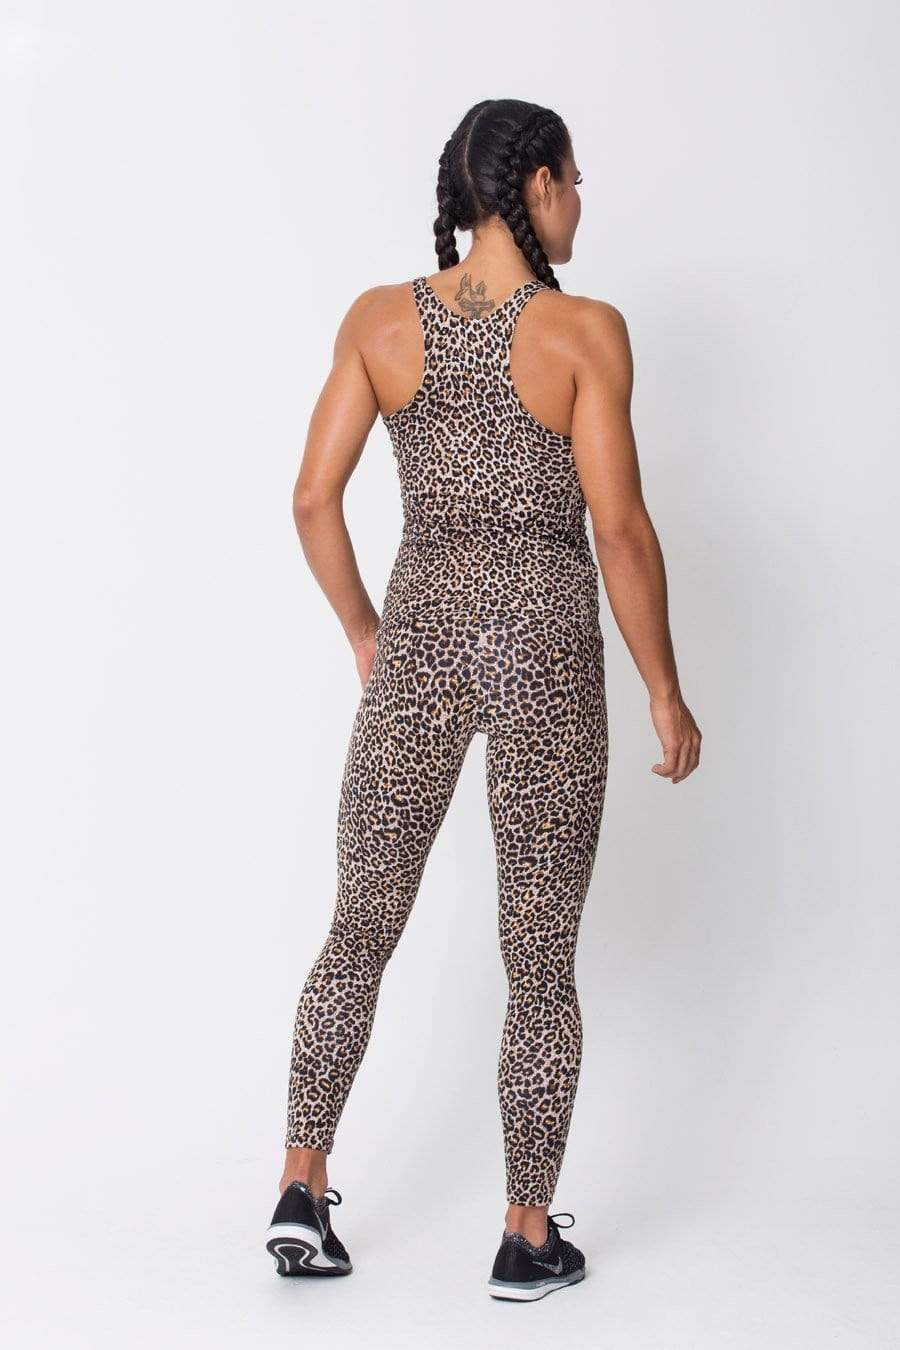 Leopard Active Tank - Sam's Fitness Goods